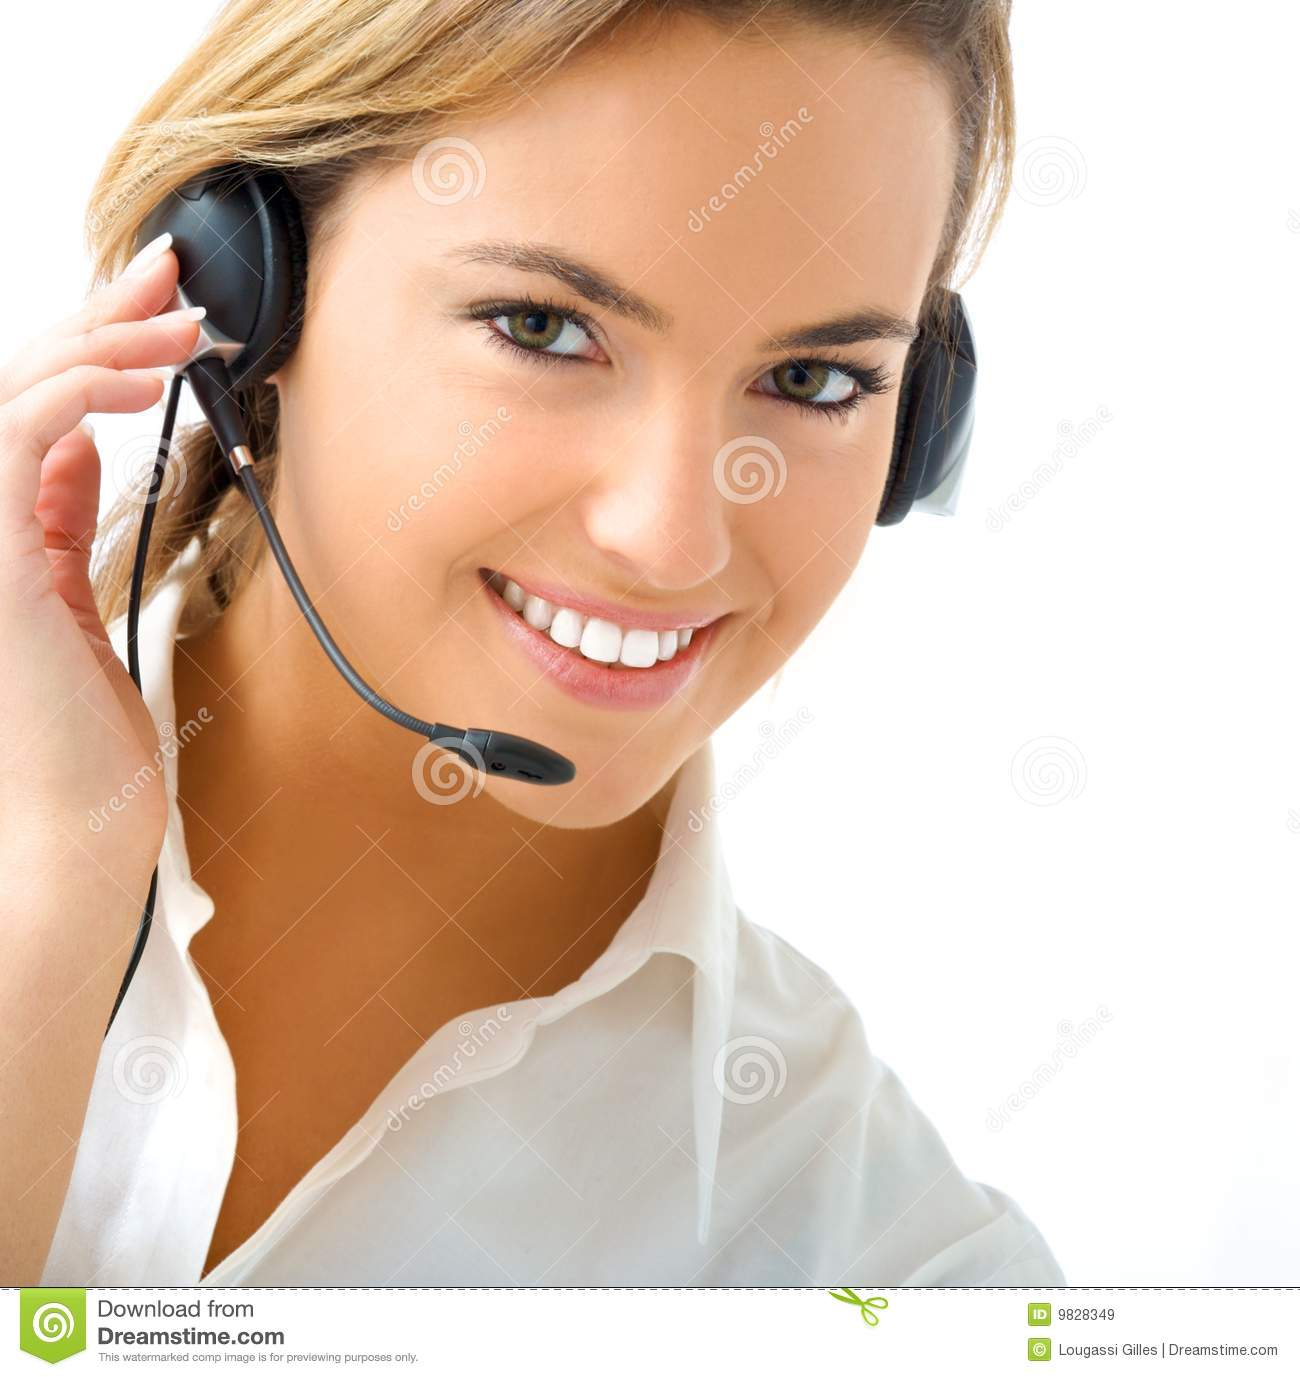 jobs what is a call girl Melbourne